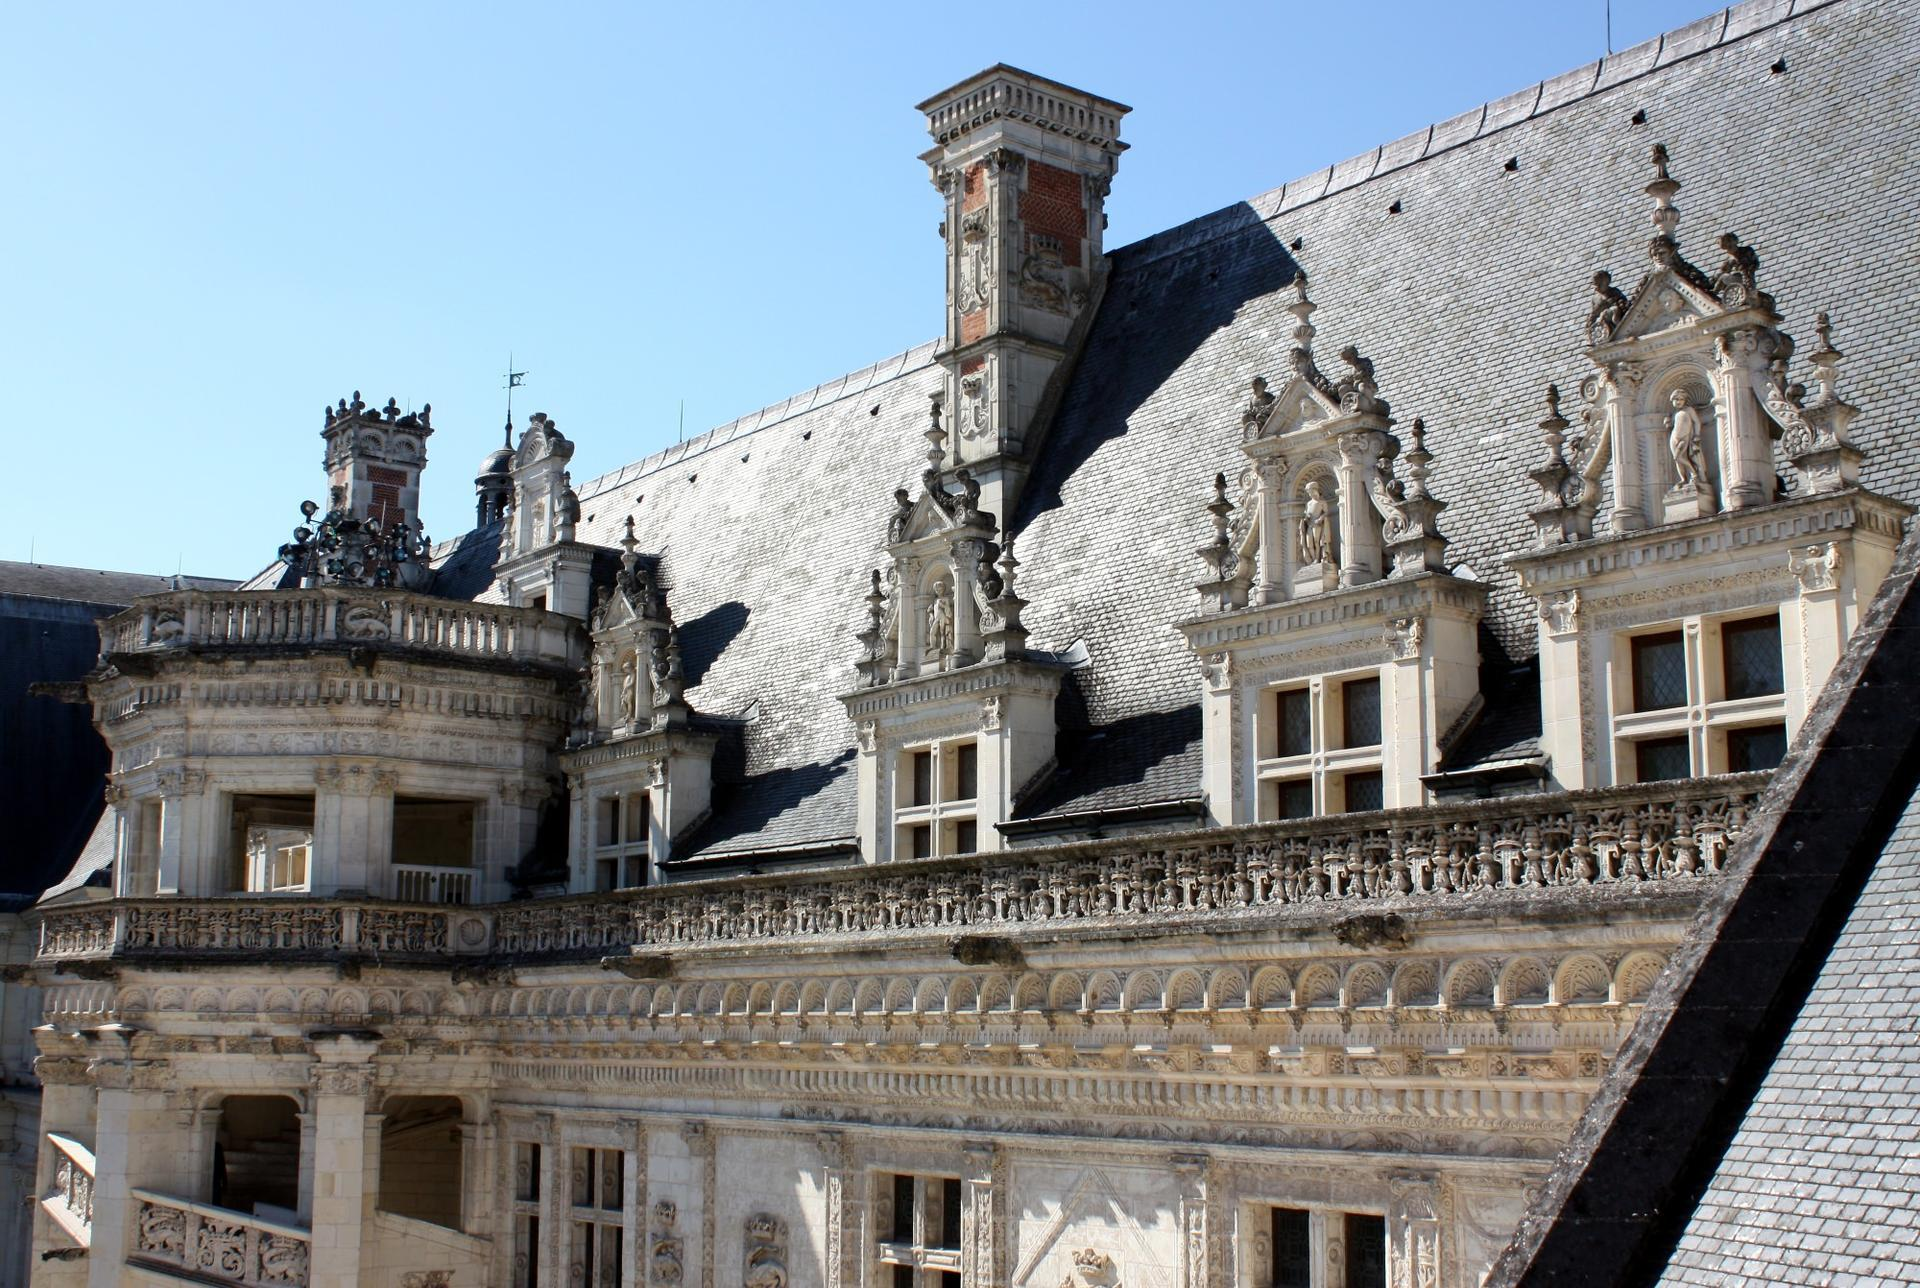 chateau-blois-aile-francois-ier-detail-photo.jpg